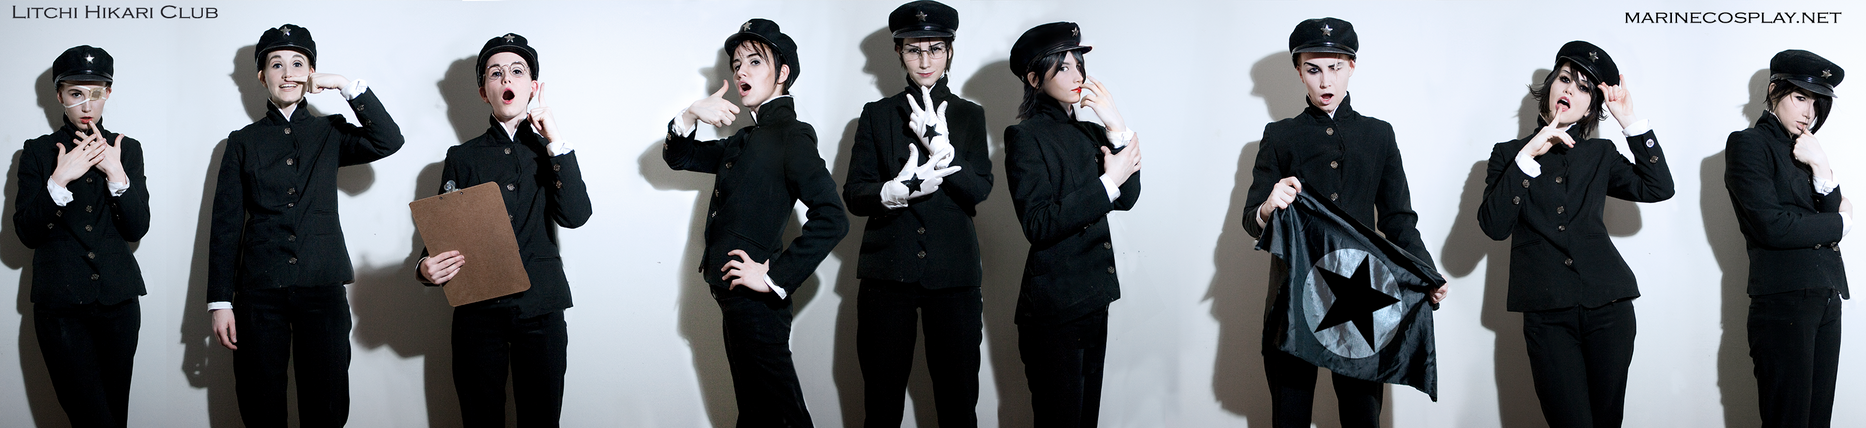 Litchi Hikari Club cosplay -whole group Makeup lab